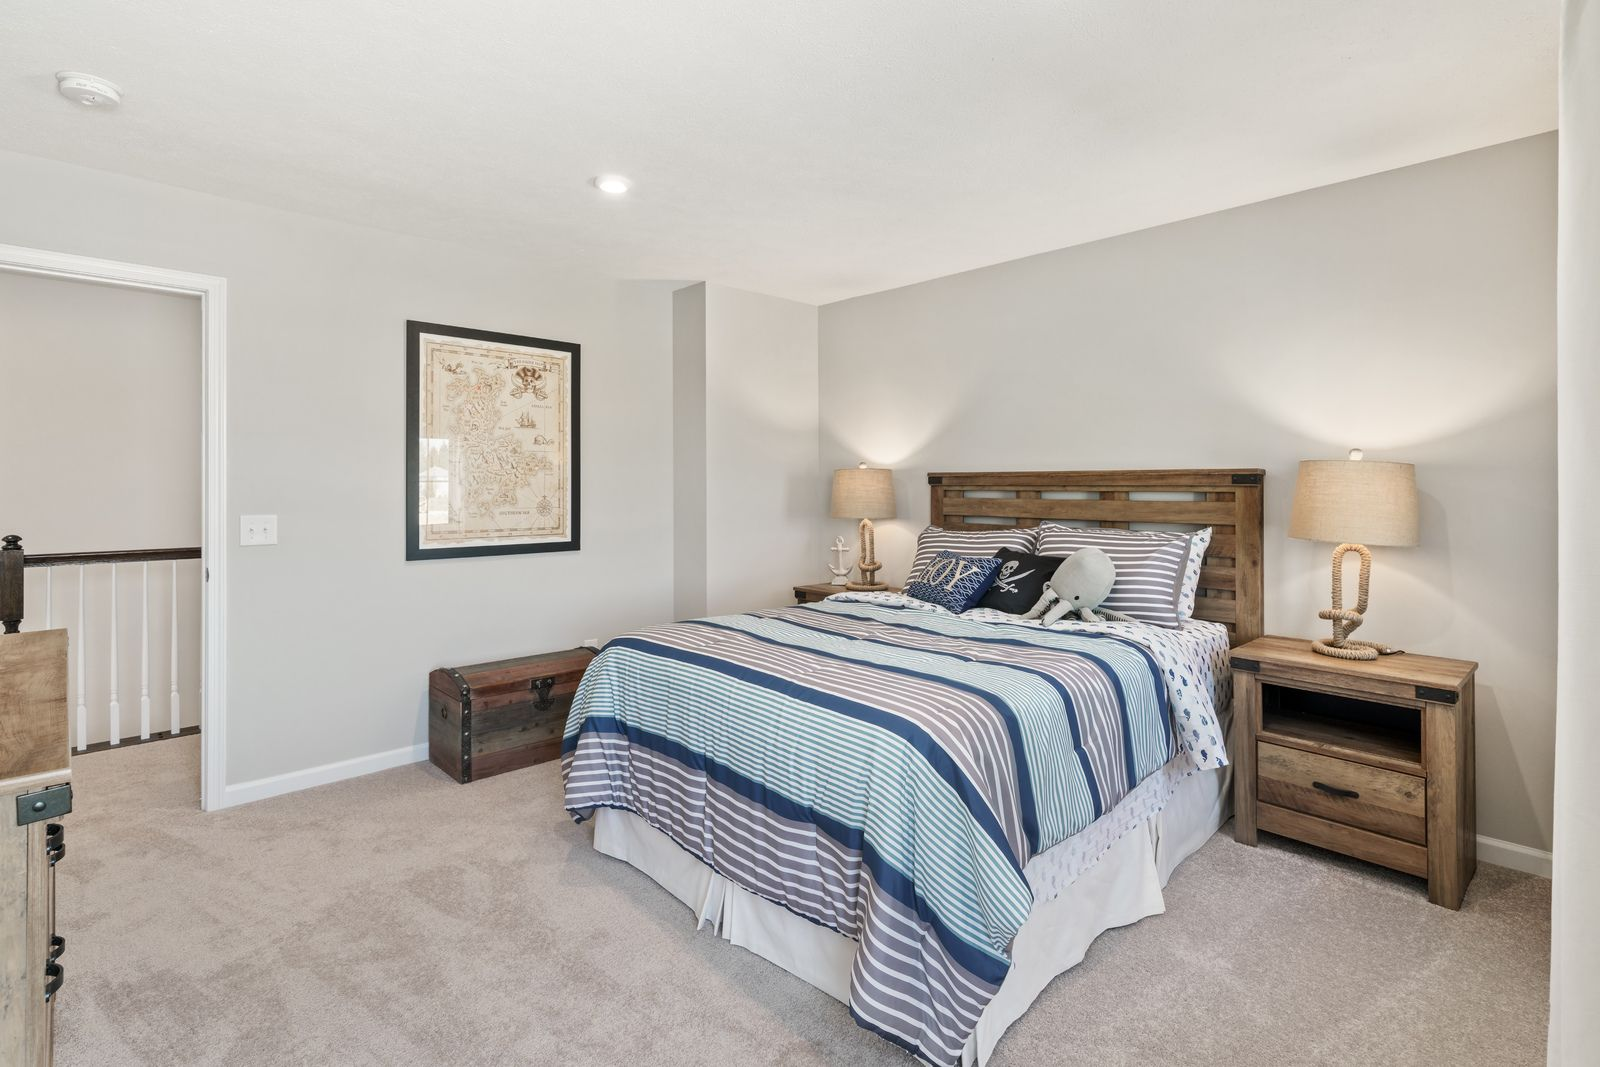 Bedroom featured in the Rosecliff By Ryan Homes in Sussex County, NJ